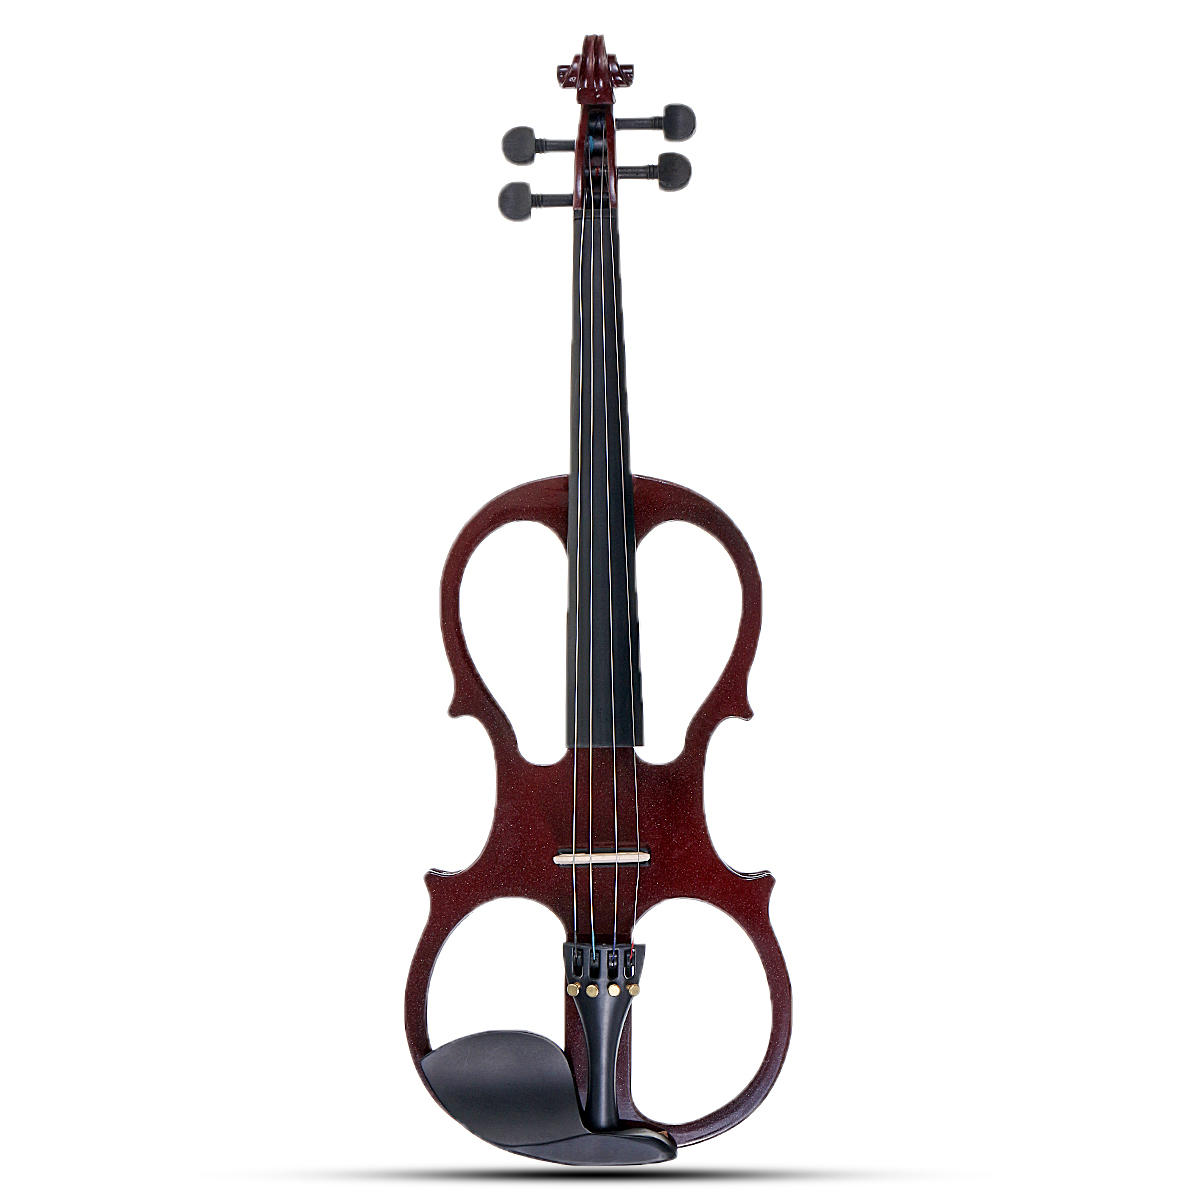 4 4 electric violin full size basswood with connecting line earphone case for beginners sale. Black Bedroom Furniture Sets. Home Design Ideas